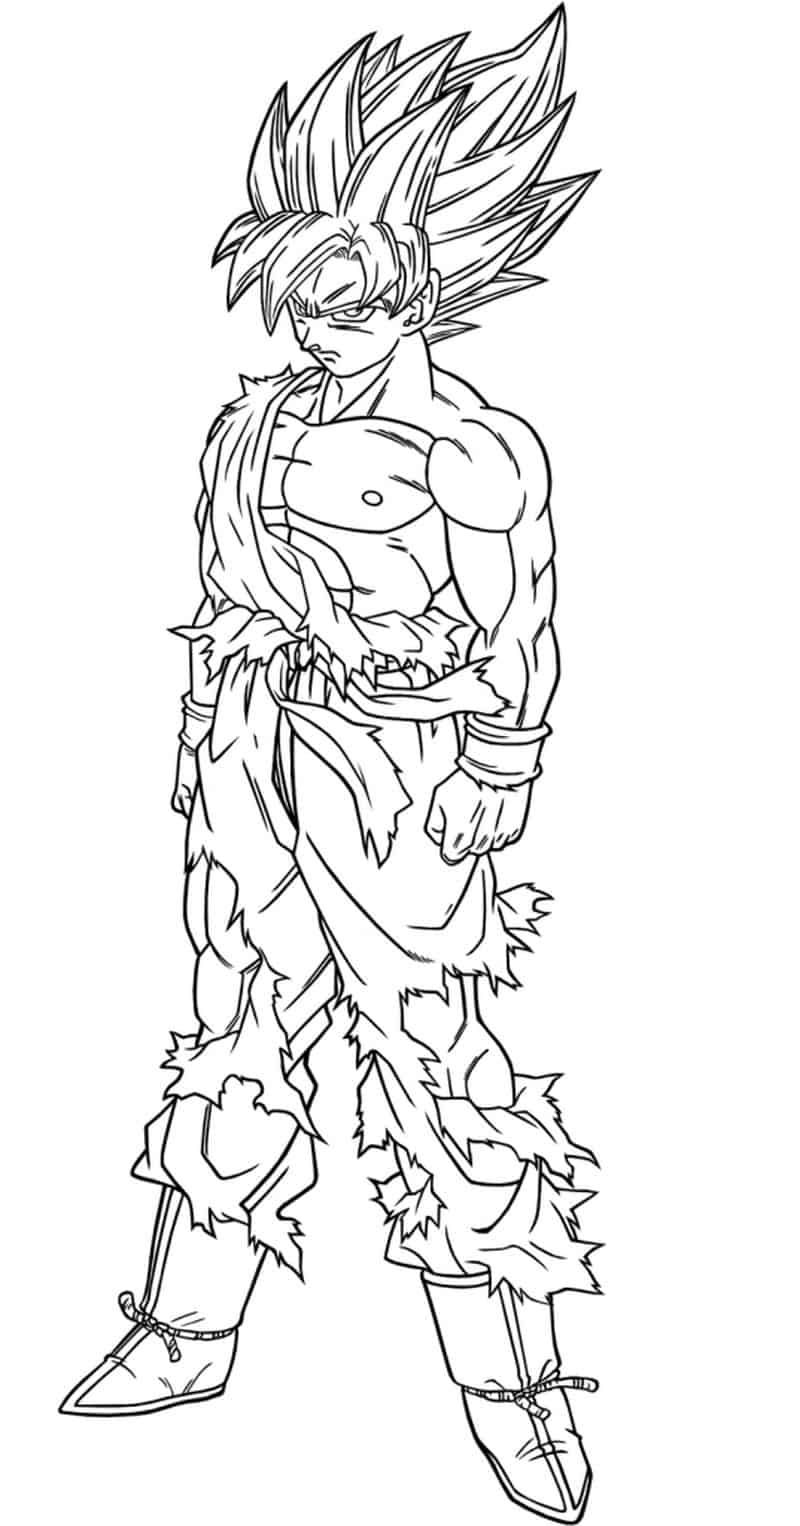 Dragon Ball Z Coloring Pages Free Coloring Sheets Dragon Ball Image Dragon Coloring Page Dragon Ball Tattoo